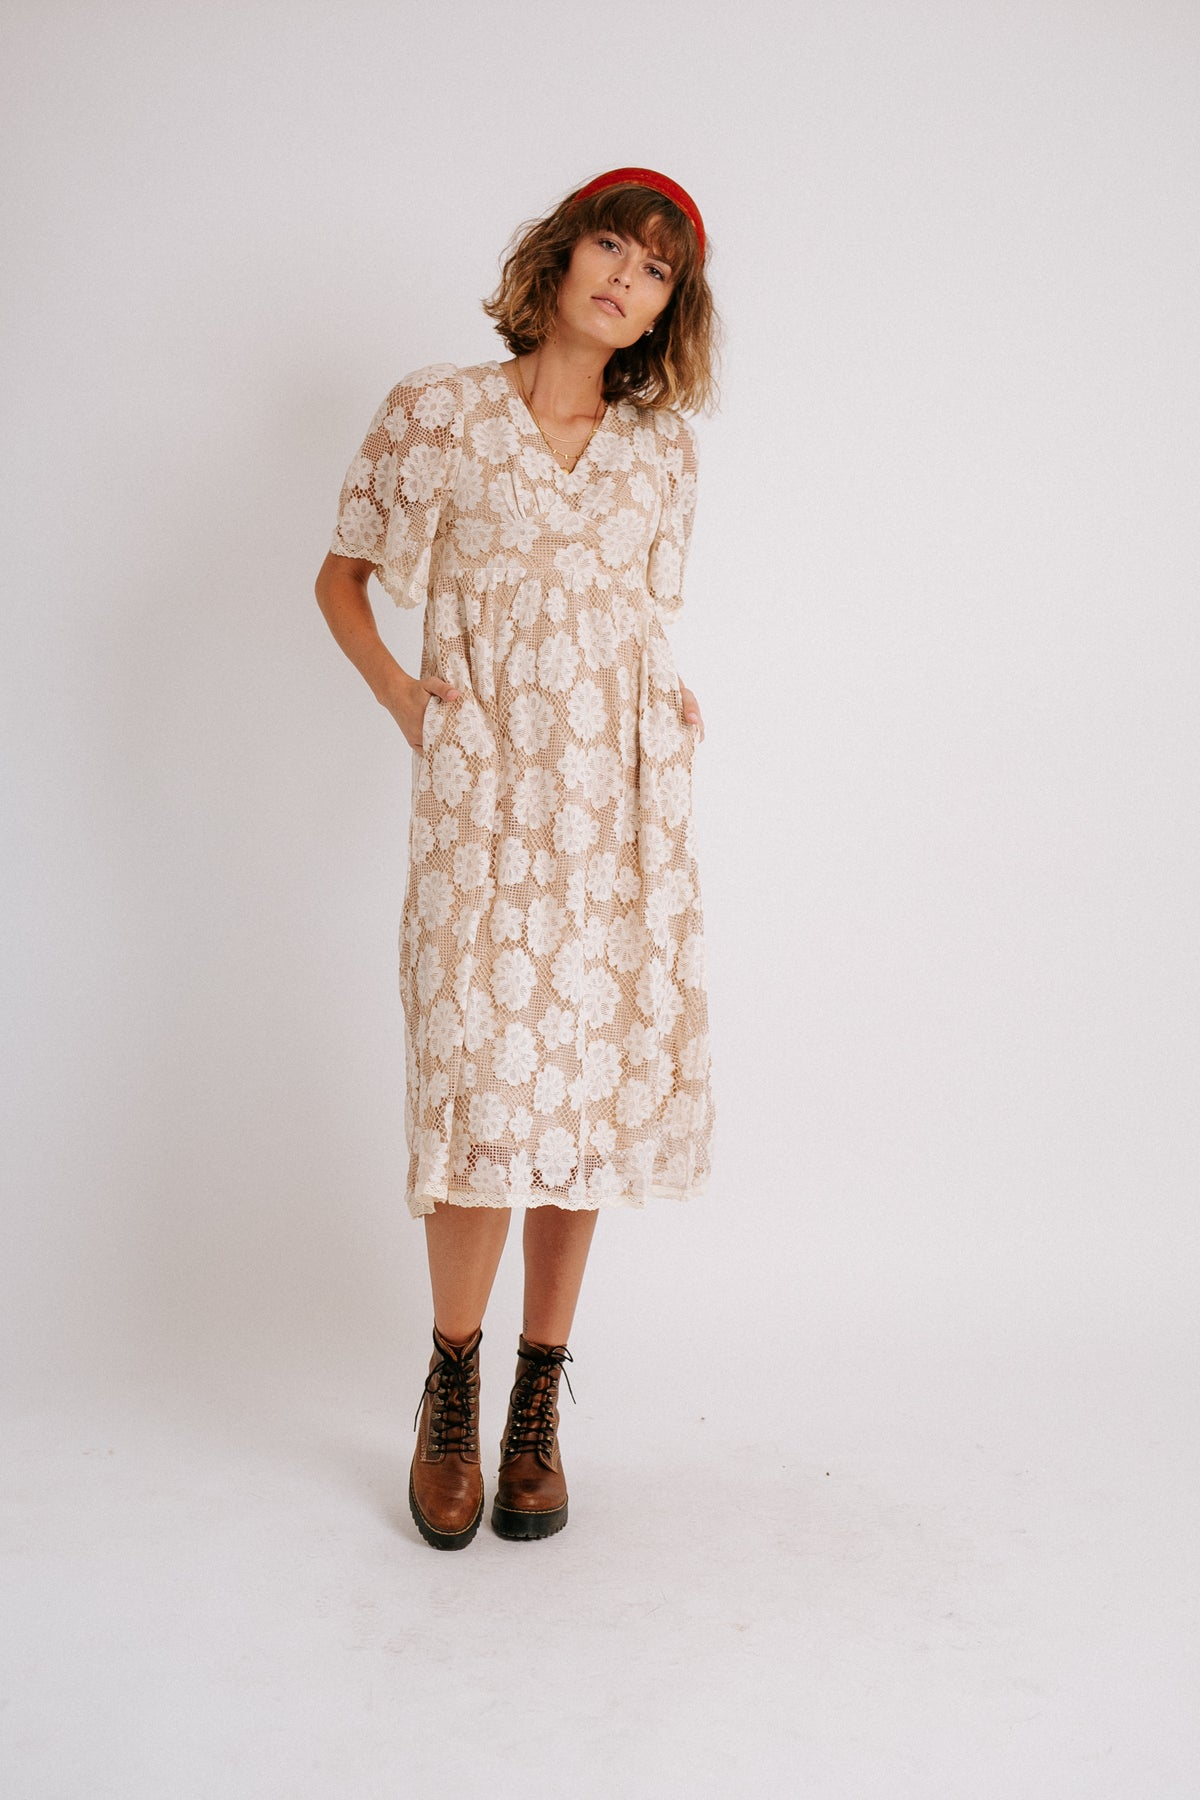 Hello Lover Lace Dress// White